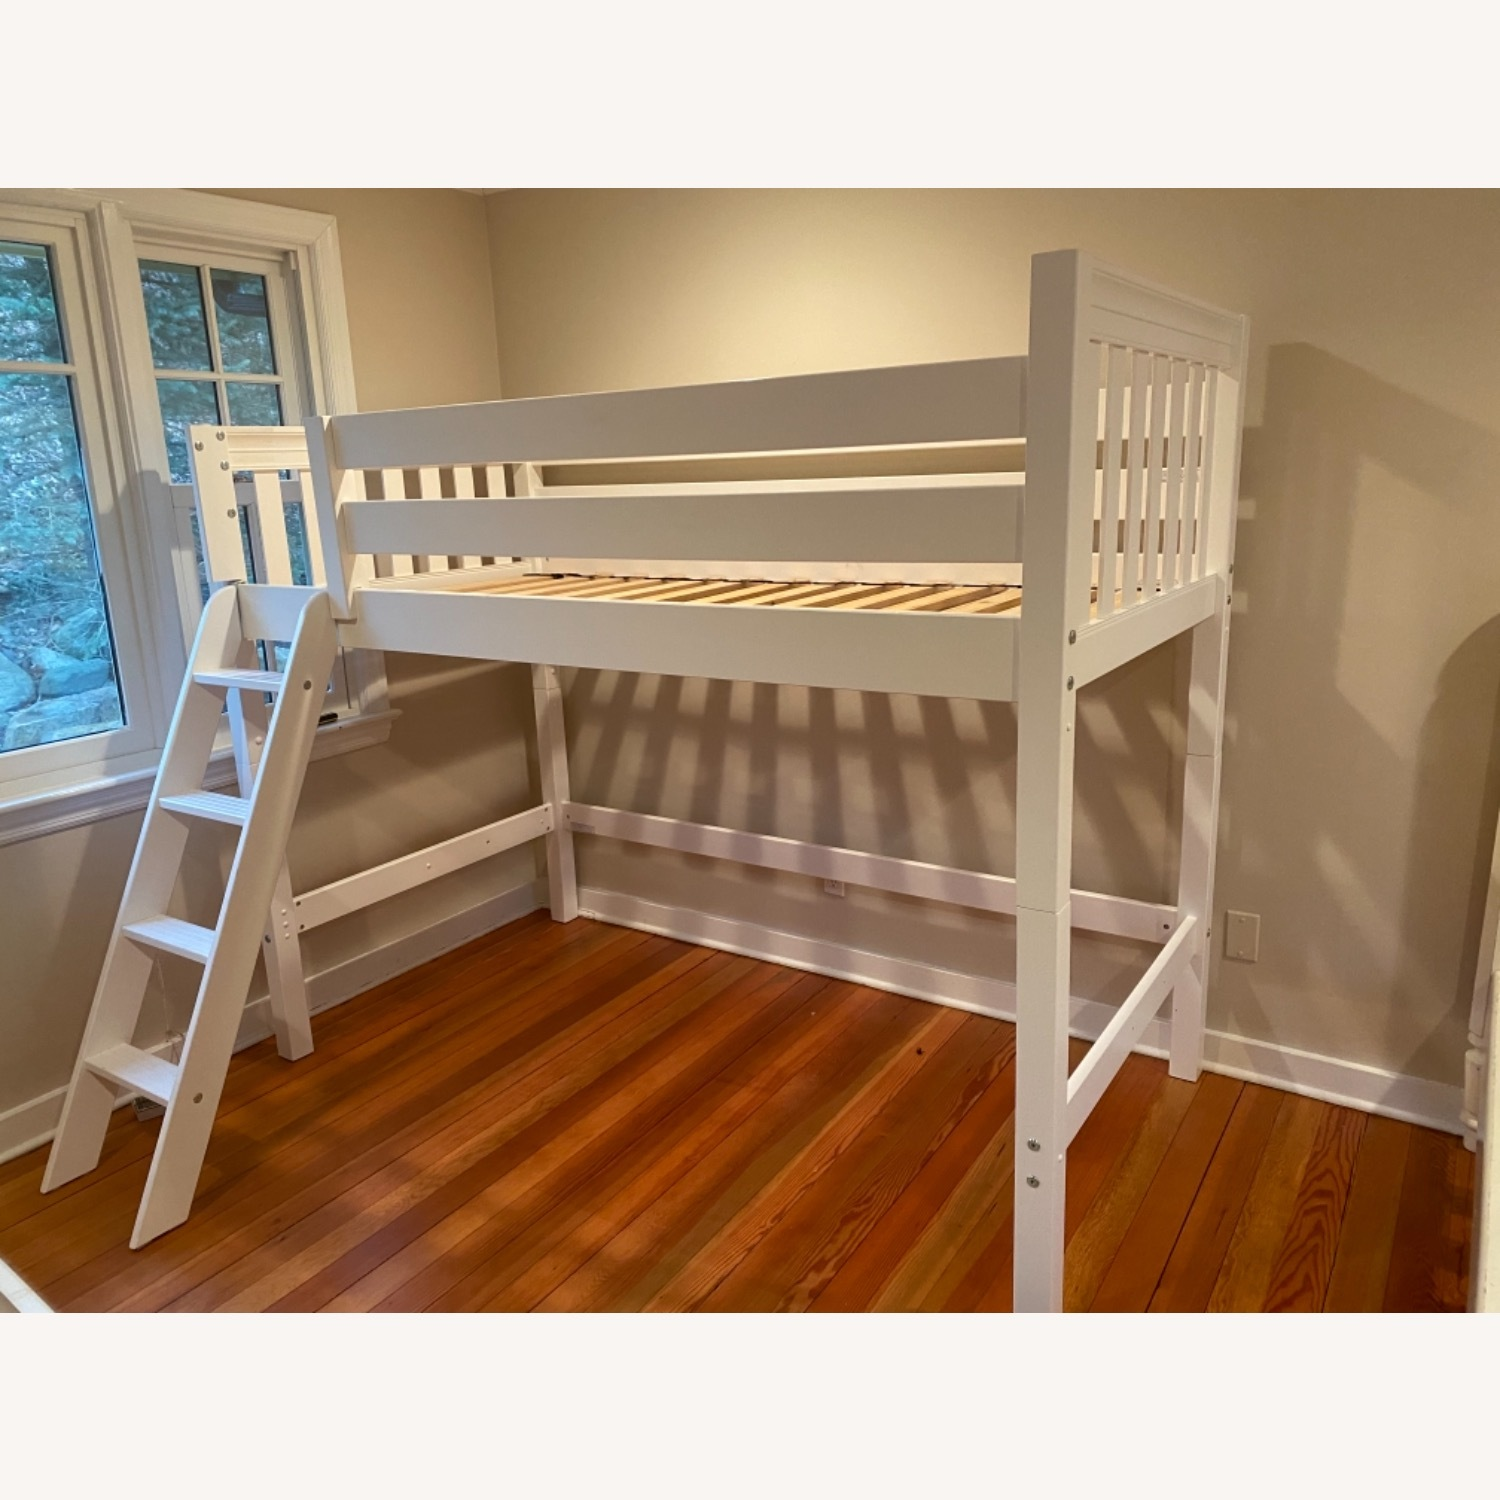 New White Loft Bed - Twin - image-4